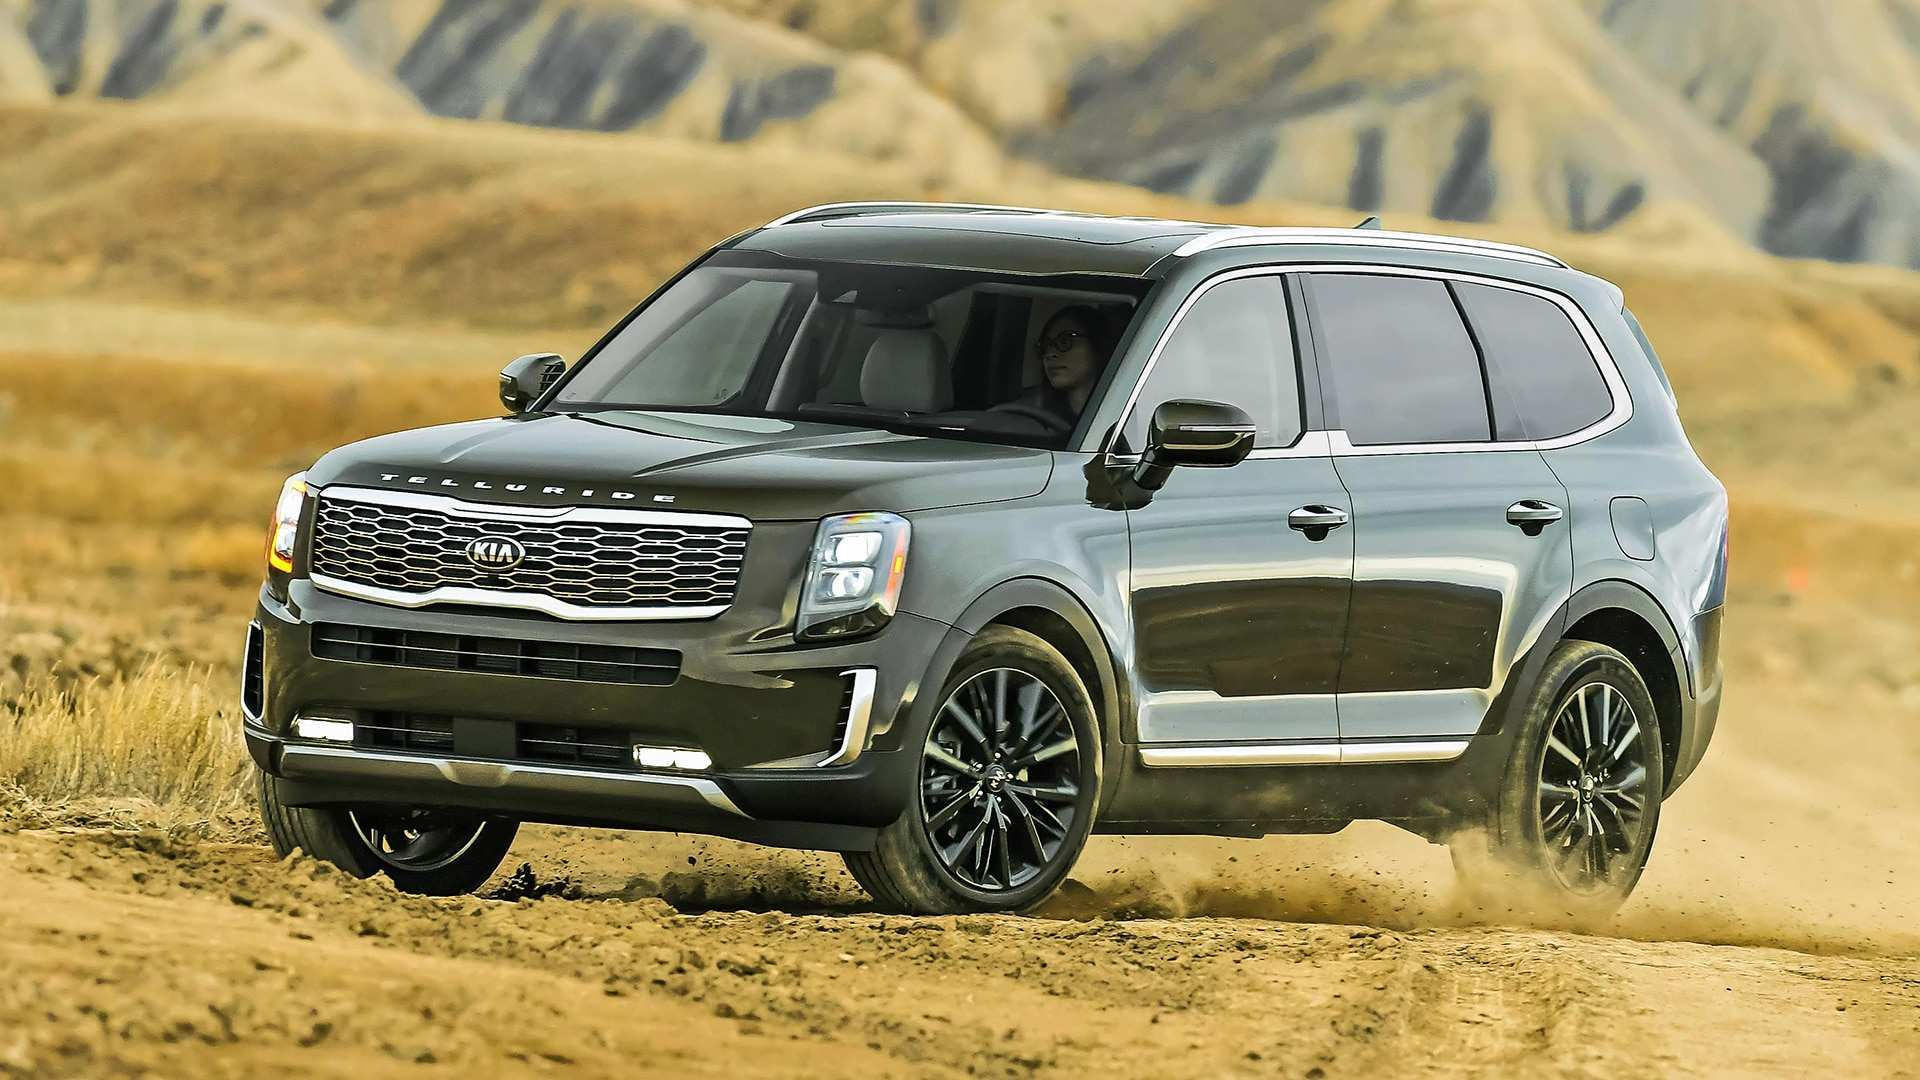 87 Great 2020 Kia Telluride Mpg Overview by 2020 Kia Telluride Mpg